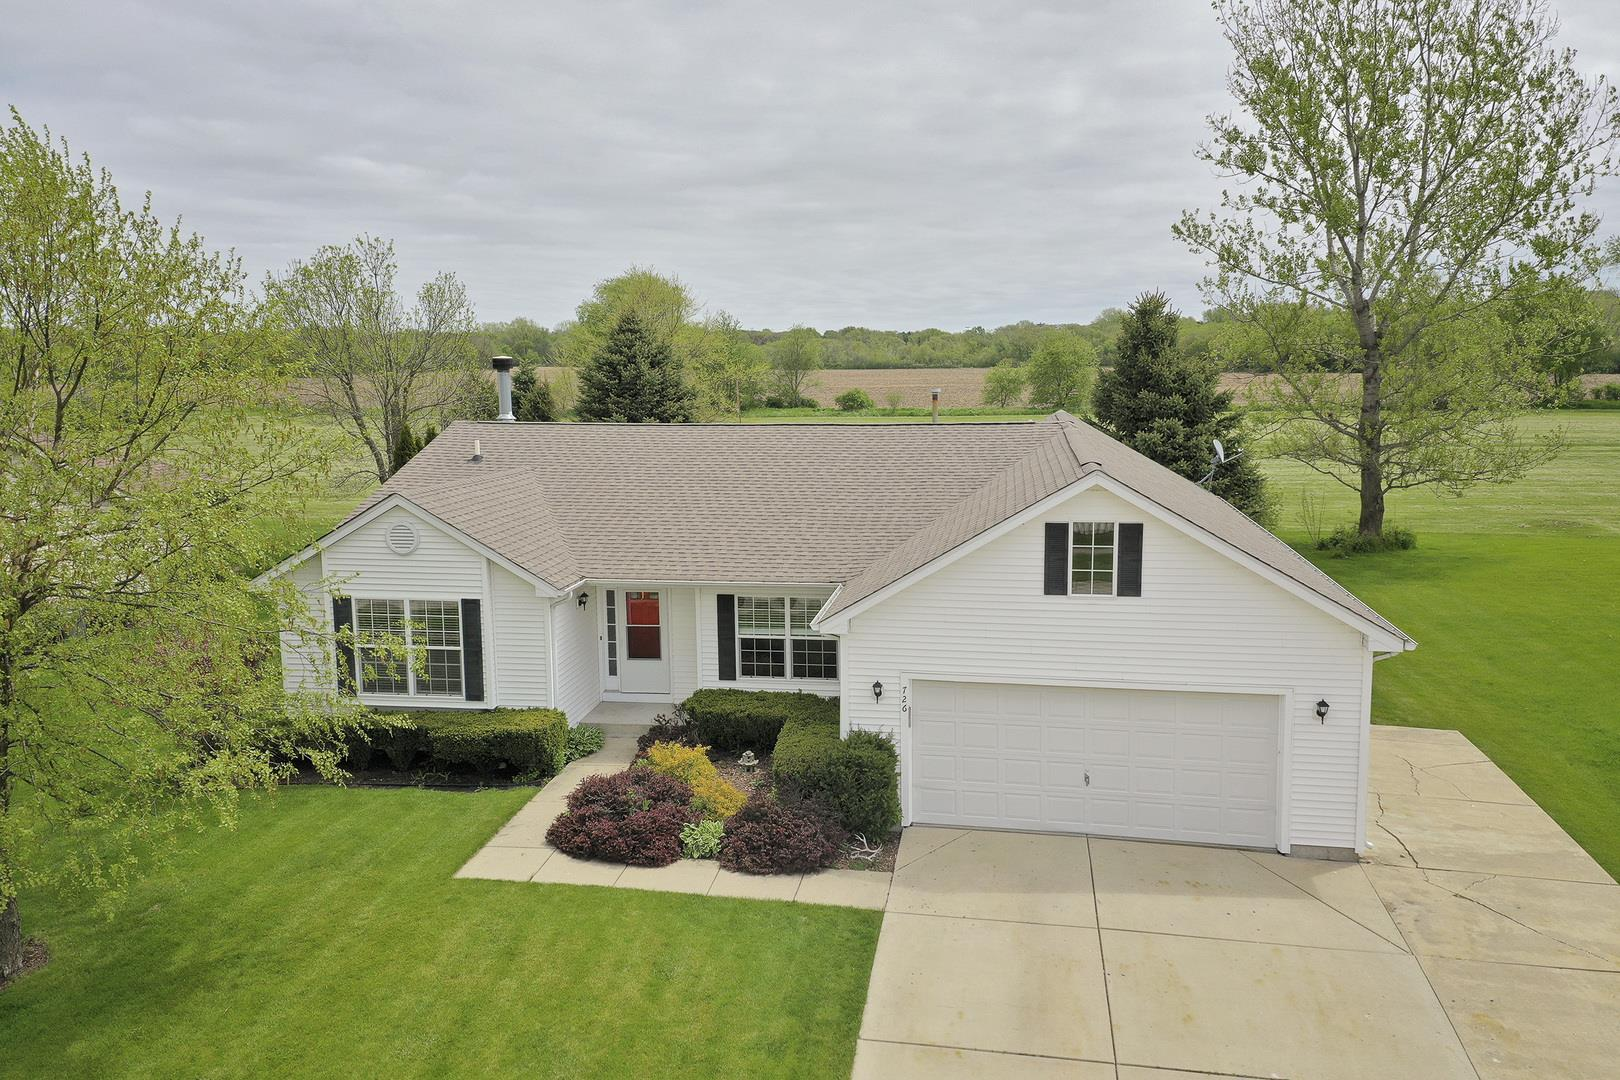 726 WHITMORE Trail, McHenry, IL 60050 - #: 10722901